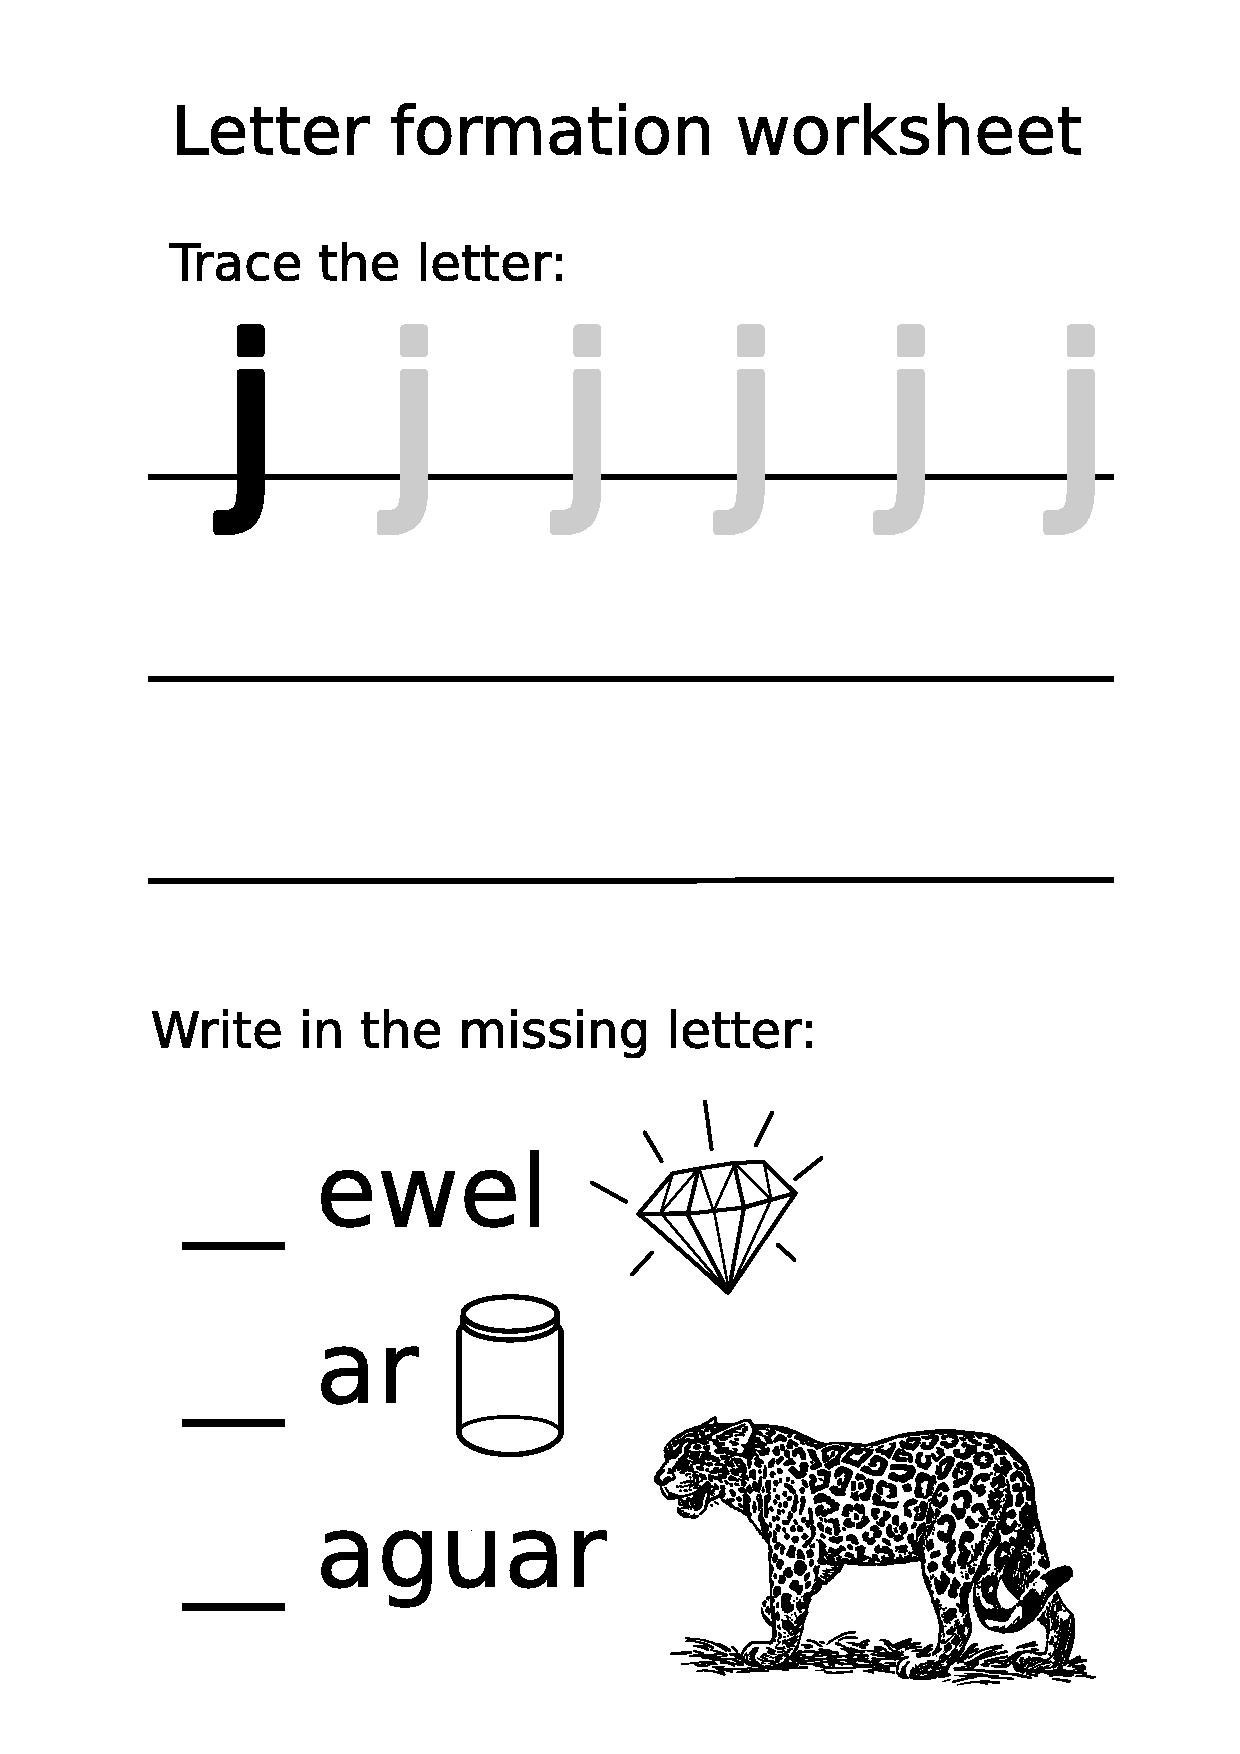 file letter formation worksheet lowercase wikimedia commons. Black Bedroom Furniture Sets. Home Design Ideas